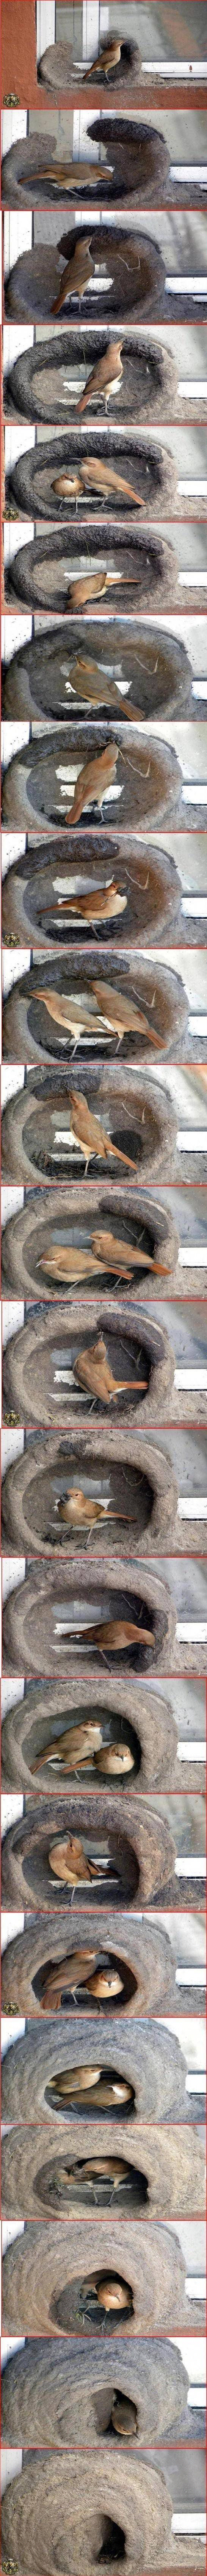 Red Oven birds building nest  // funny pictures - funny photos - funny images - funny pics - funny quotes - #lol #humor #funnypictures